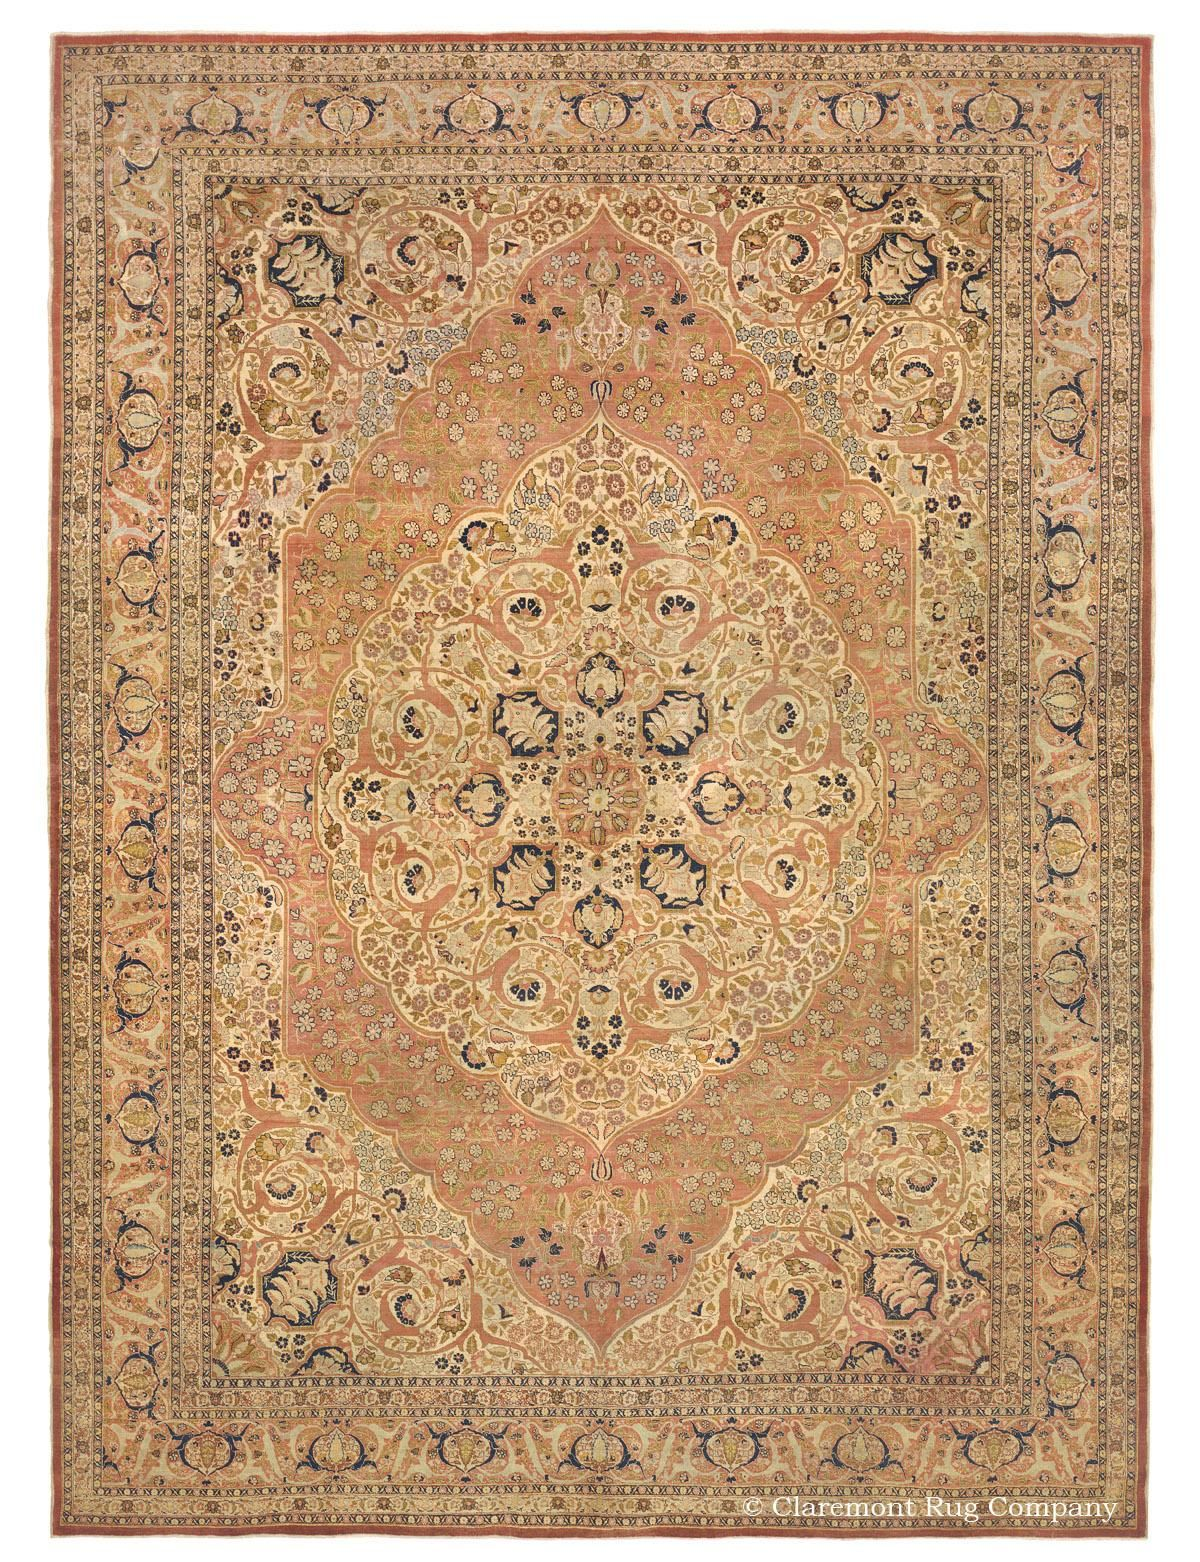 Hadji Jallili Haji Jalili Tabriz Rugs Persian Rug Designs Rugs On Carpet Rugs